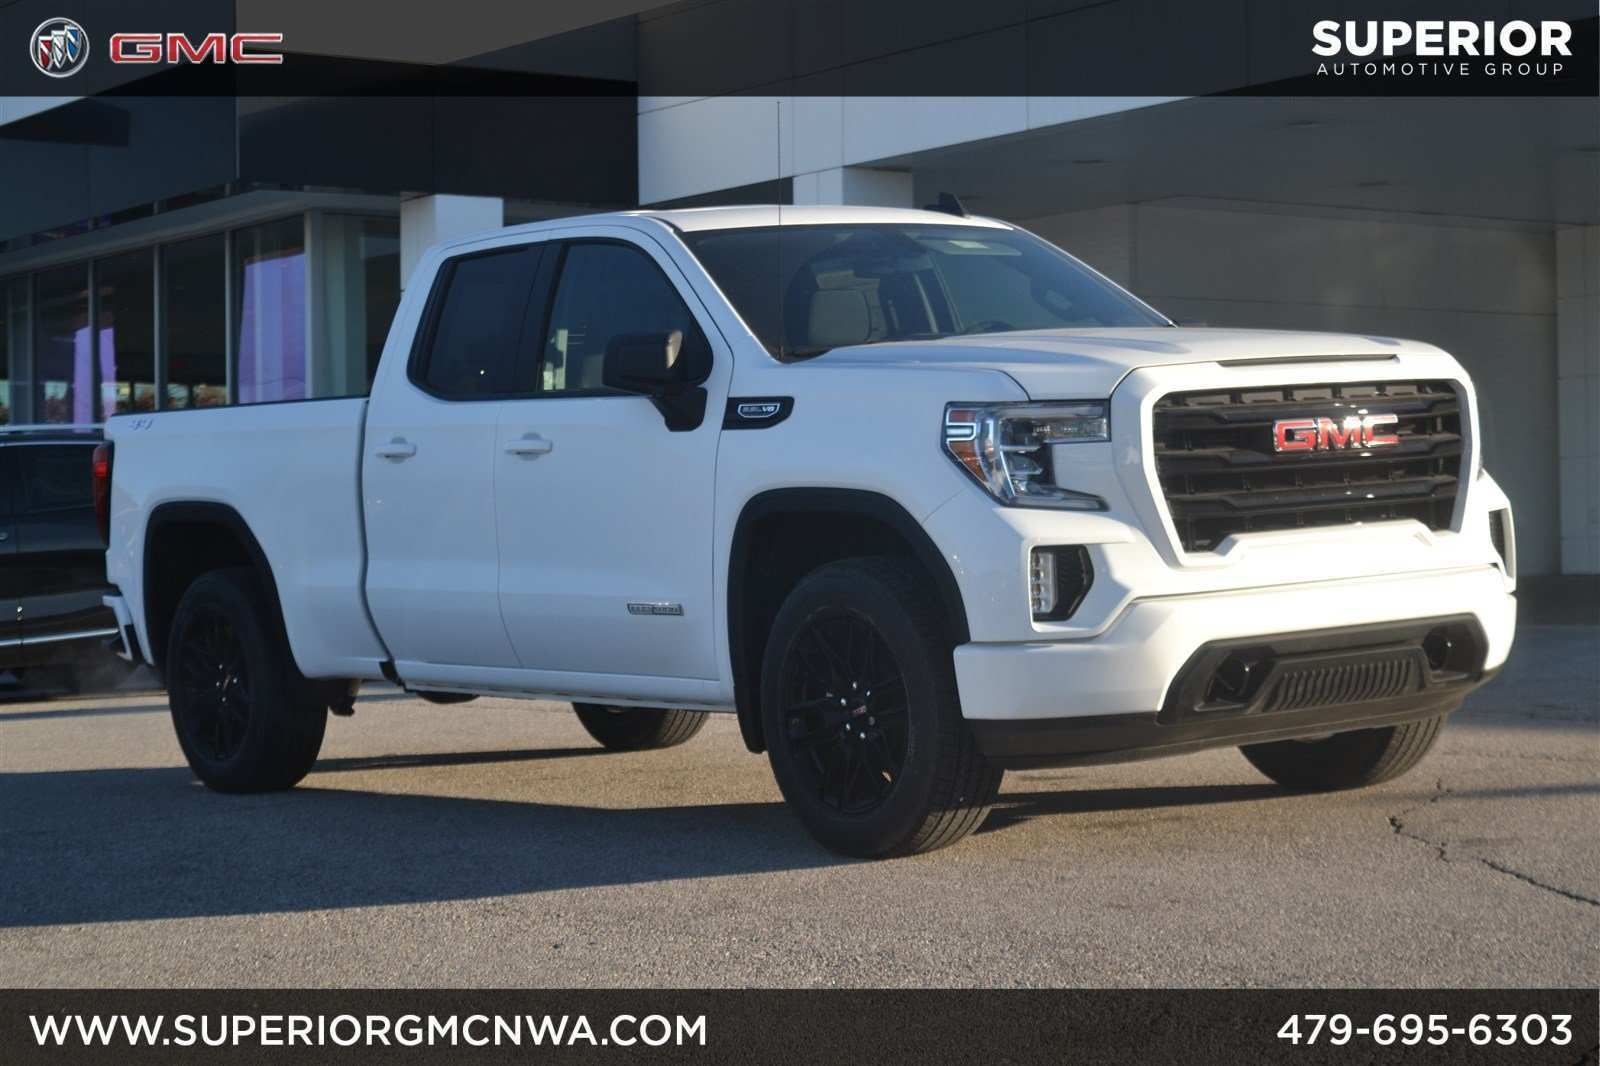 32 All New 2019 Gmc Elevation Rumors for 2019 Gmc Elevation